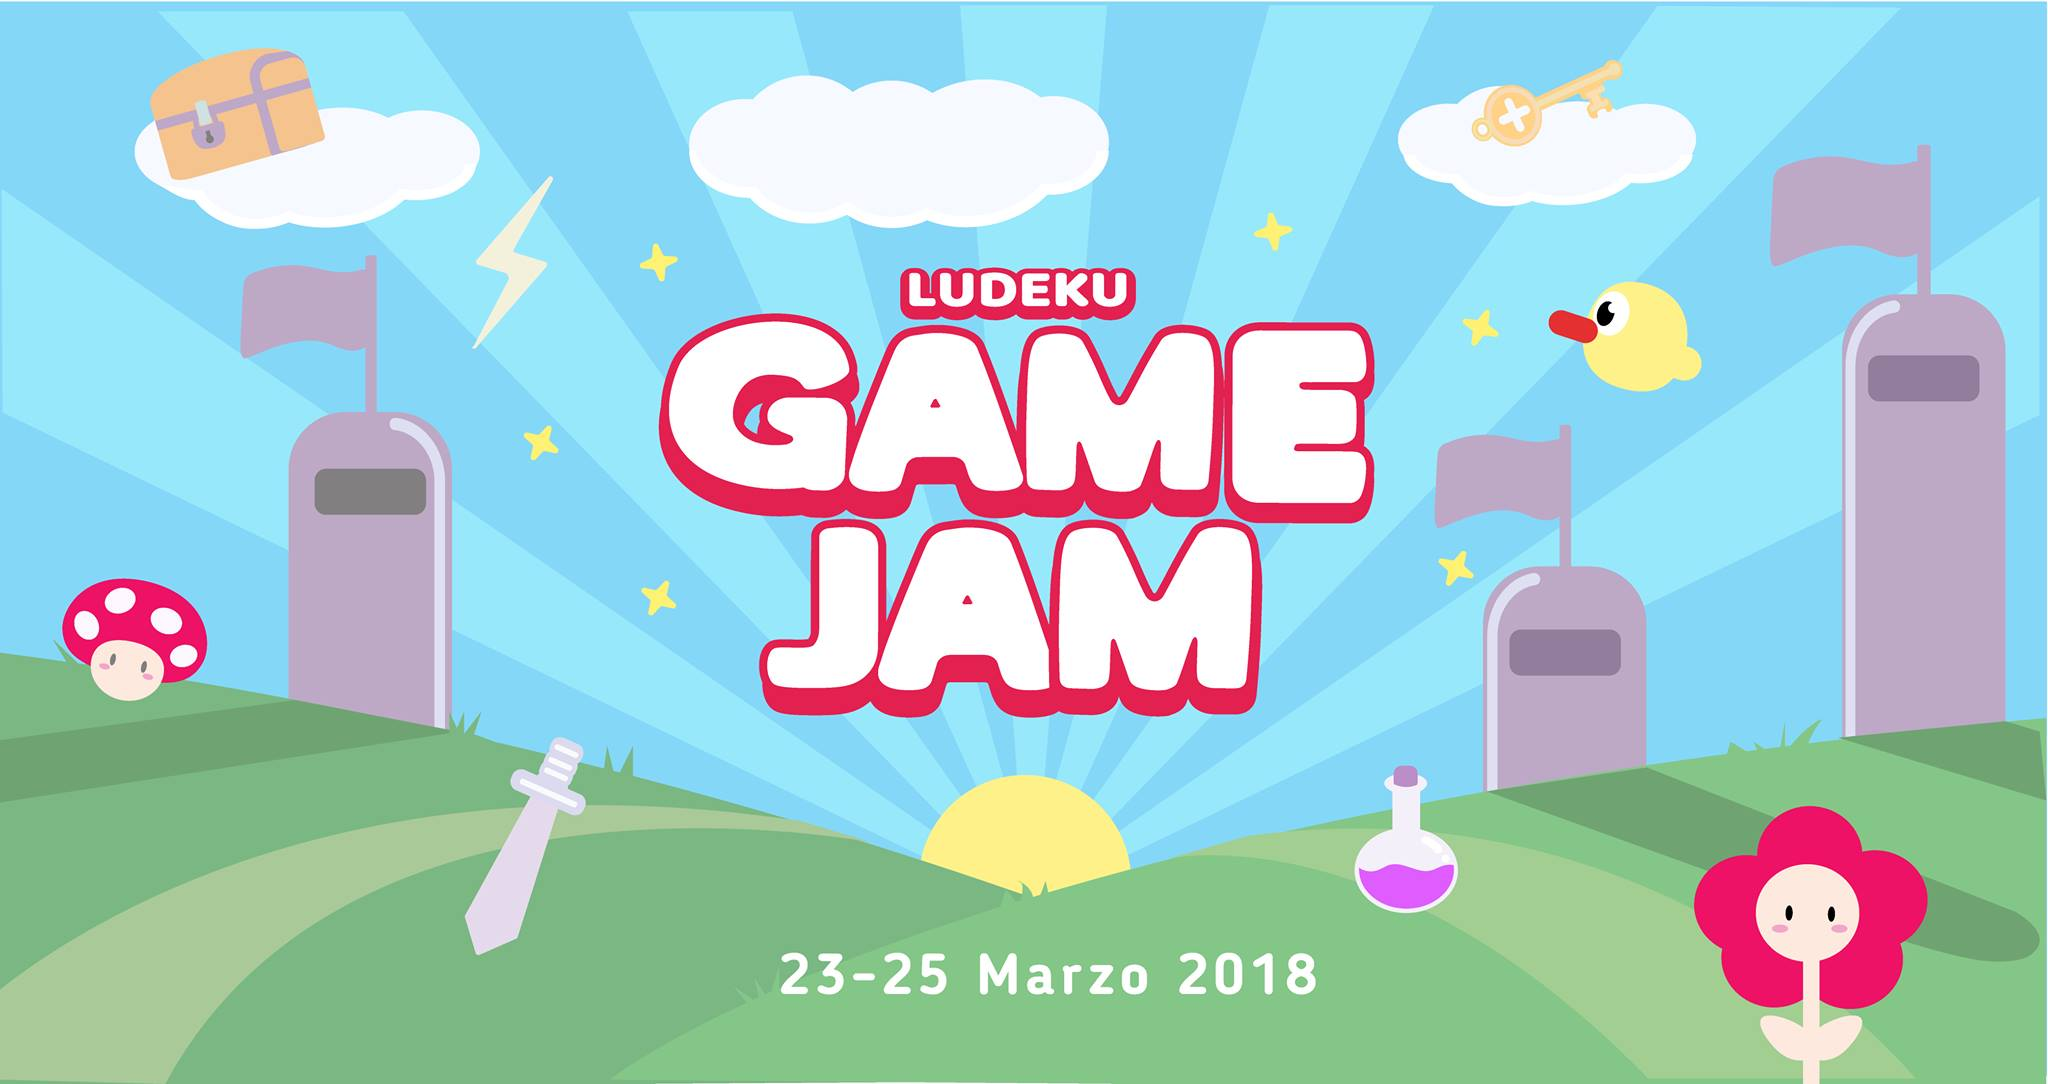 Ludeku Game Jam